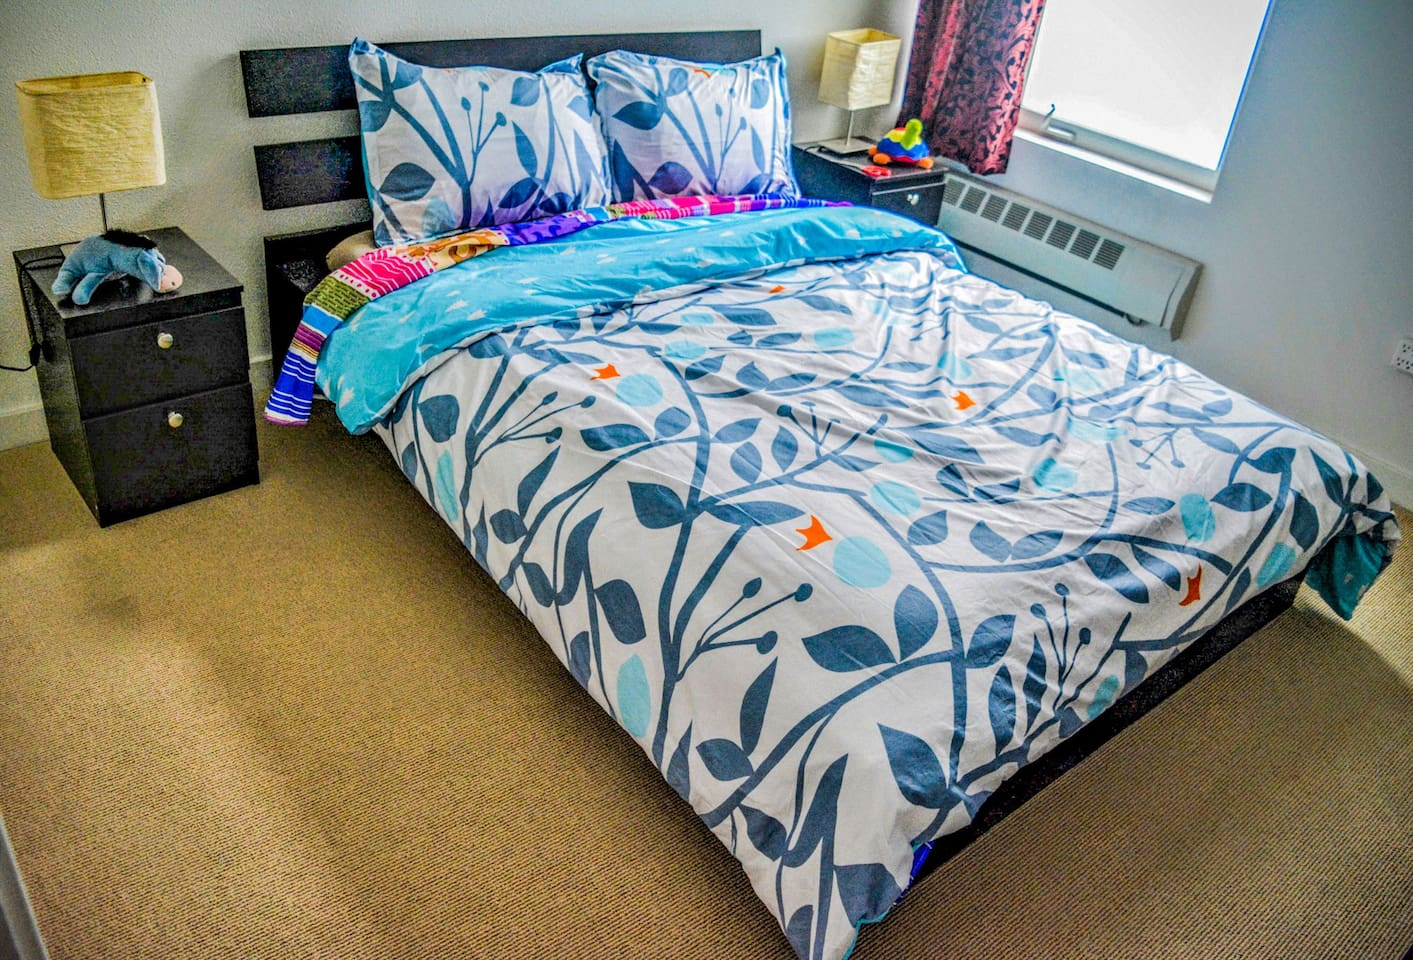 Guest bedroom with a comfortable full bed (54 inches x 74 inches). I change the sheets/covers regularly, so it may look different than in this photo when you arrive - available to book